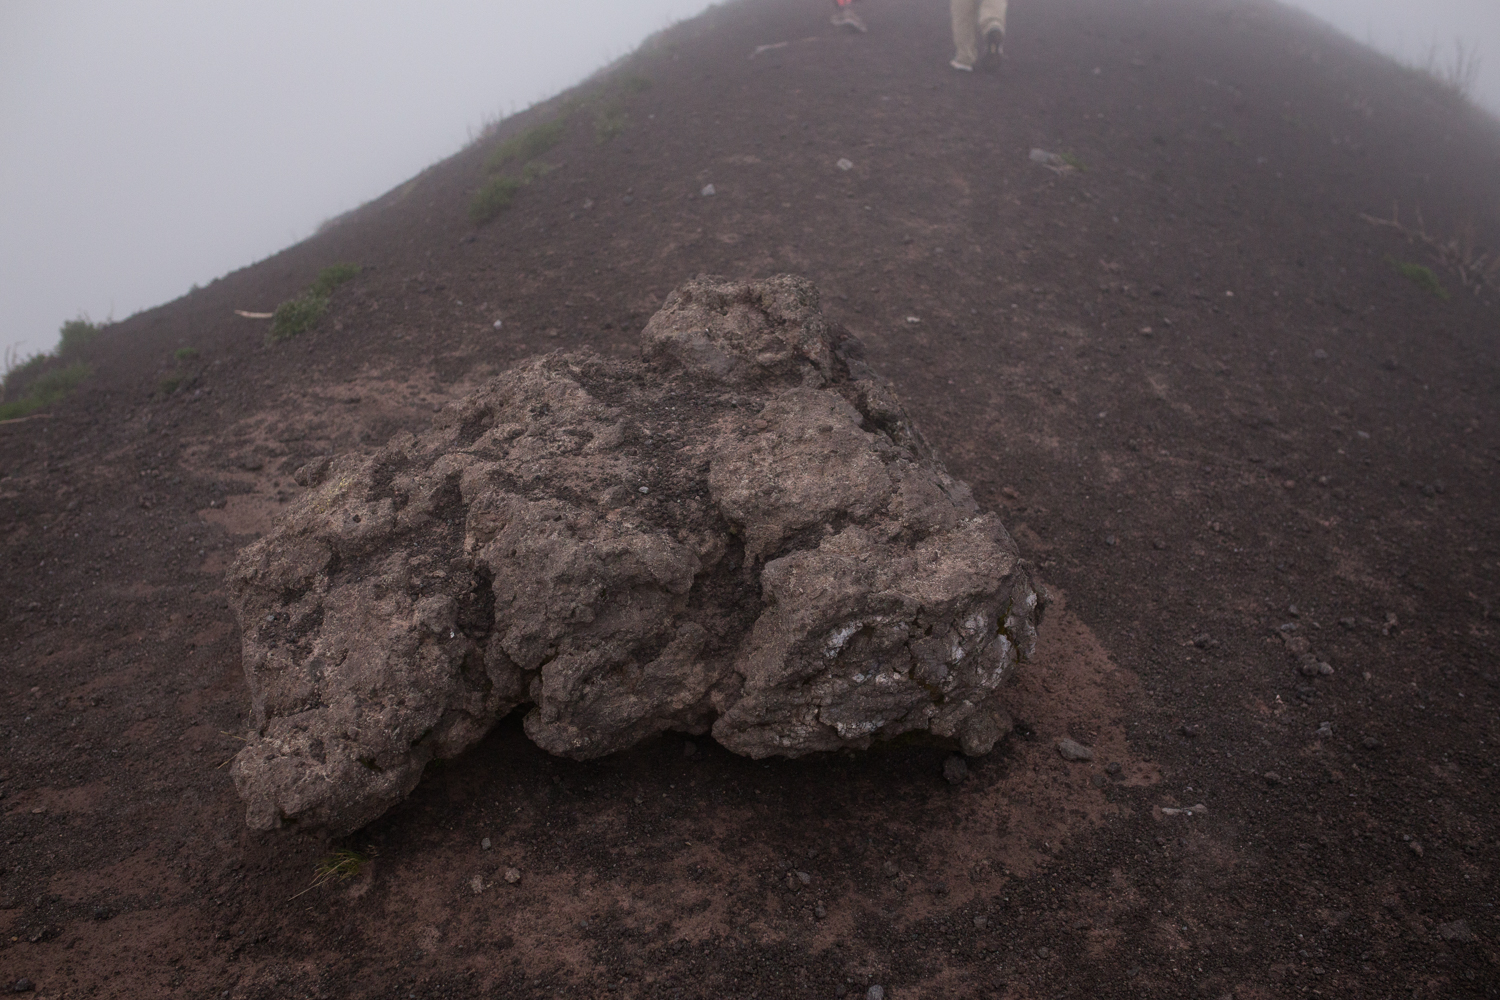 This boulder, about 400m from the mouth of Fuego, was not here before the June 2 eruption.